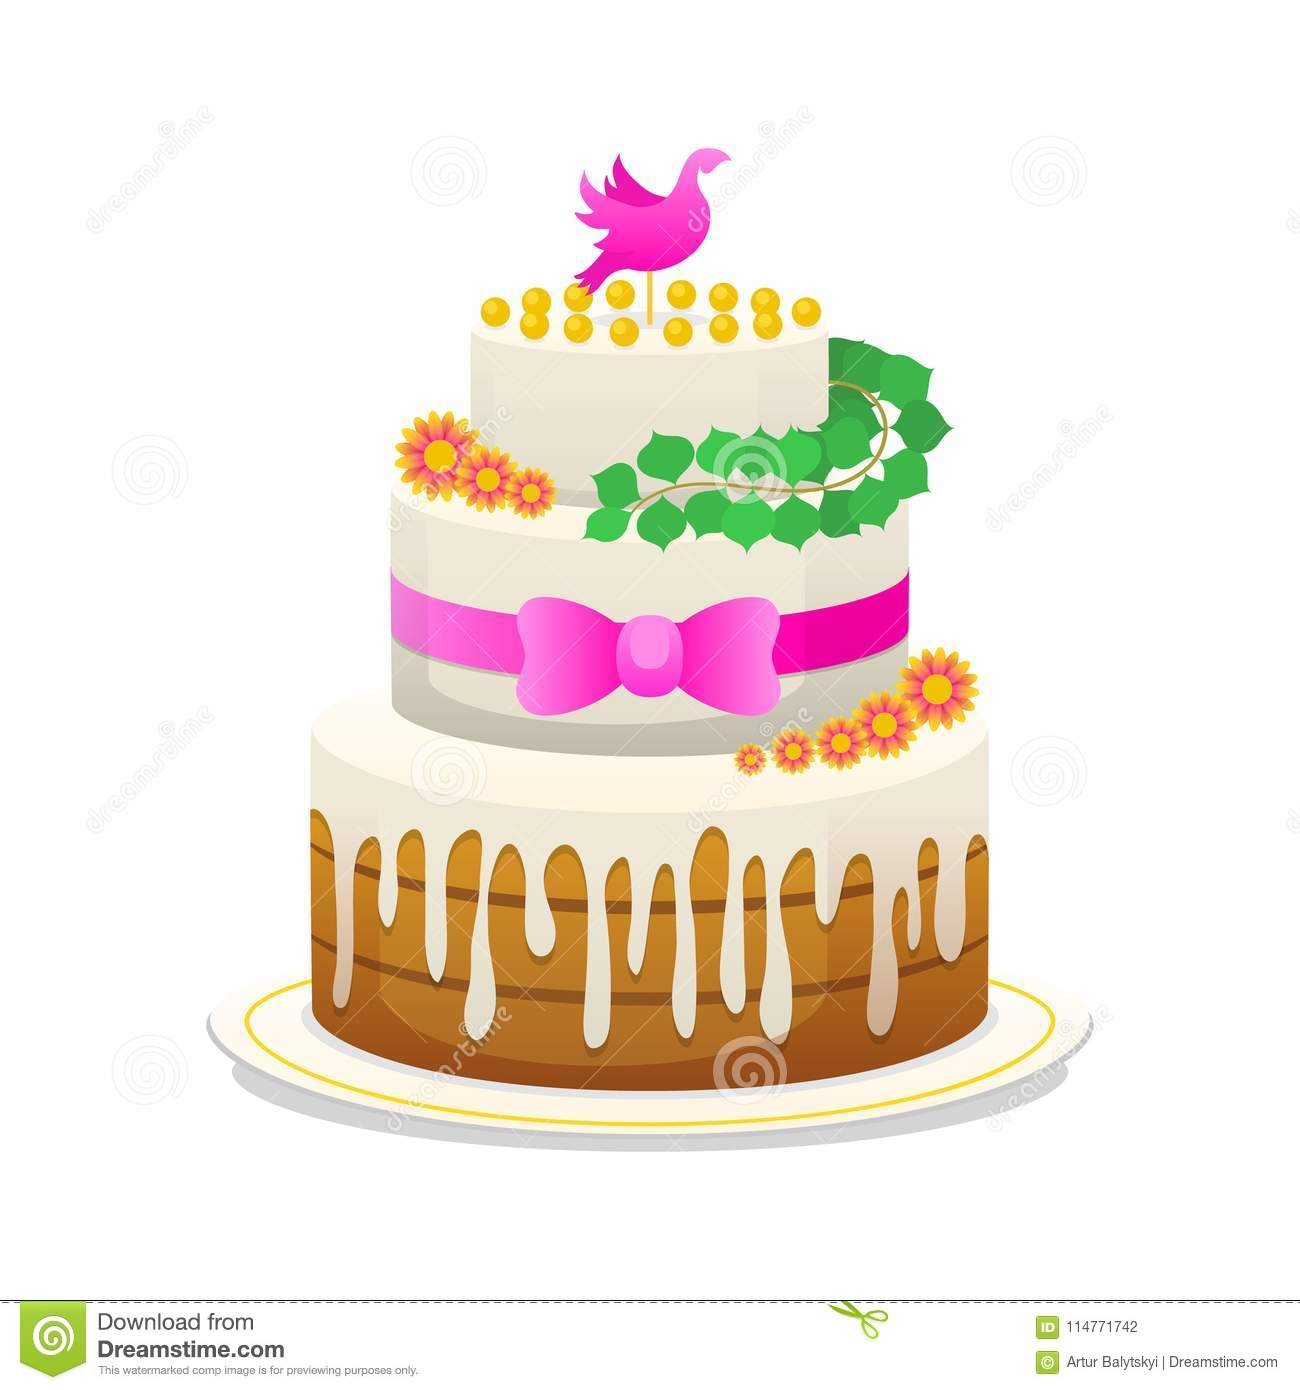 Wedding Celebratory Cake With Flowers Bow For The Groom And The